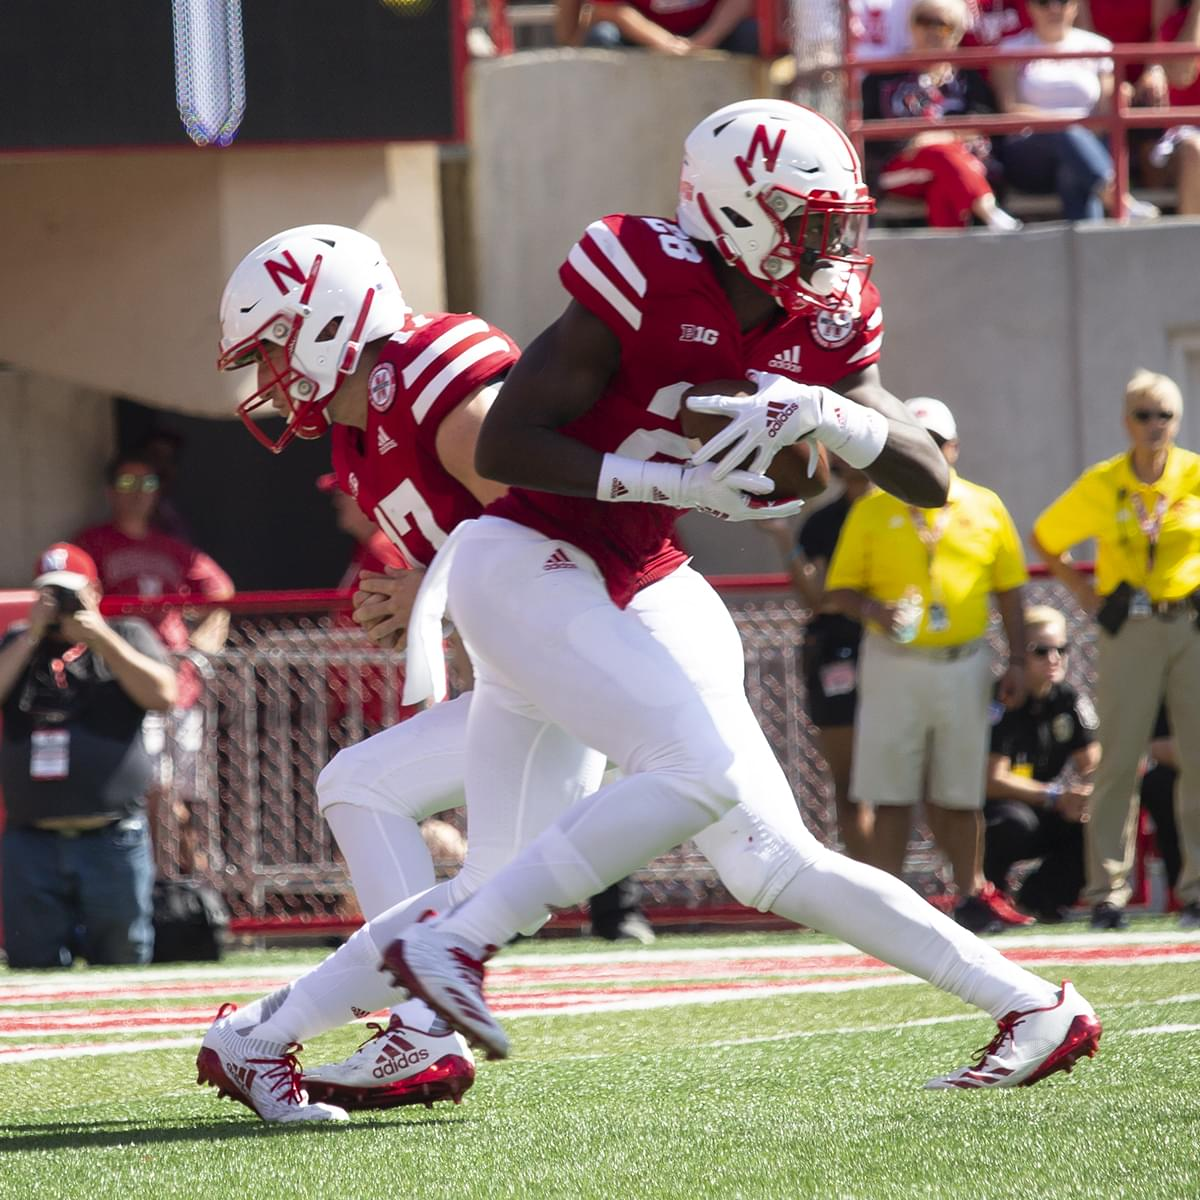 Husker's New Running Backs were a Bright Spot in a Forgettable Game